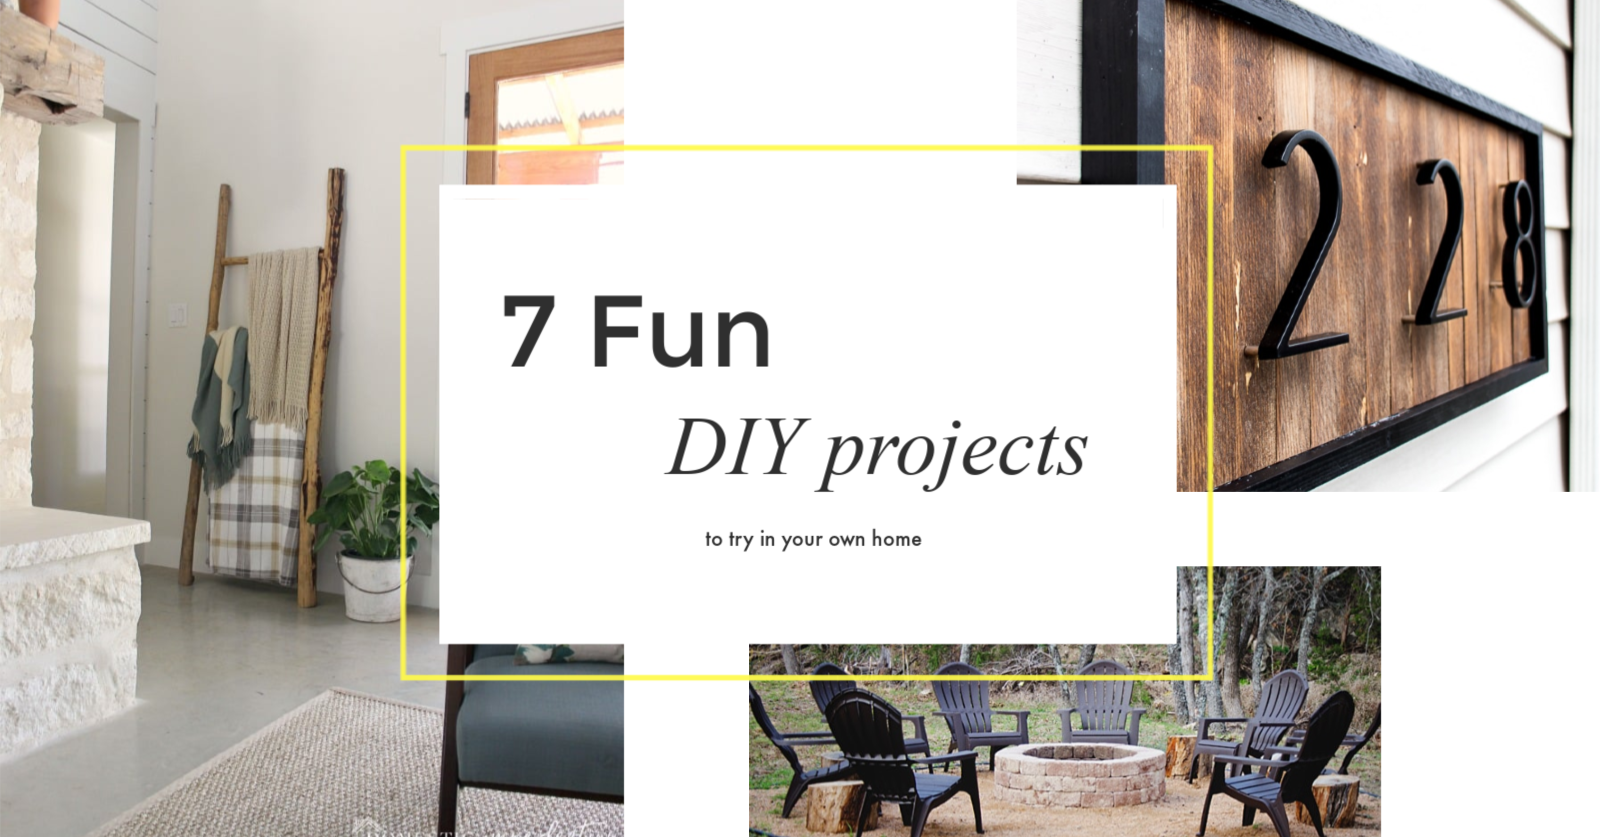 7 fun DIY projects